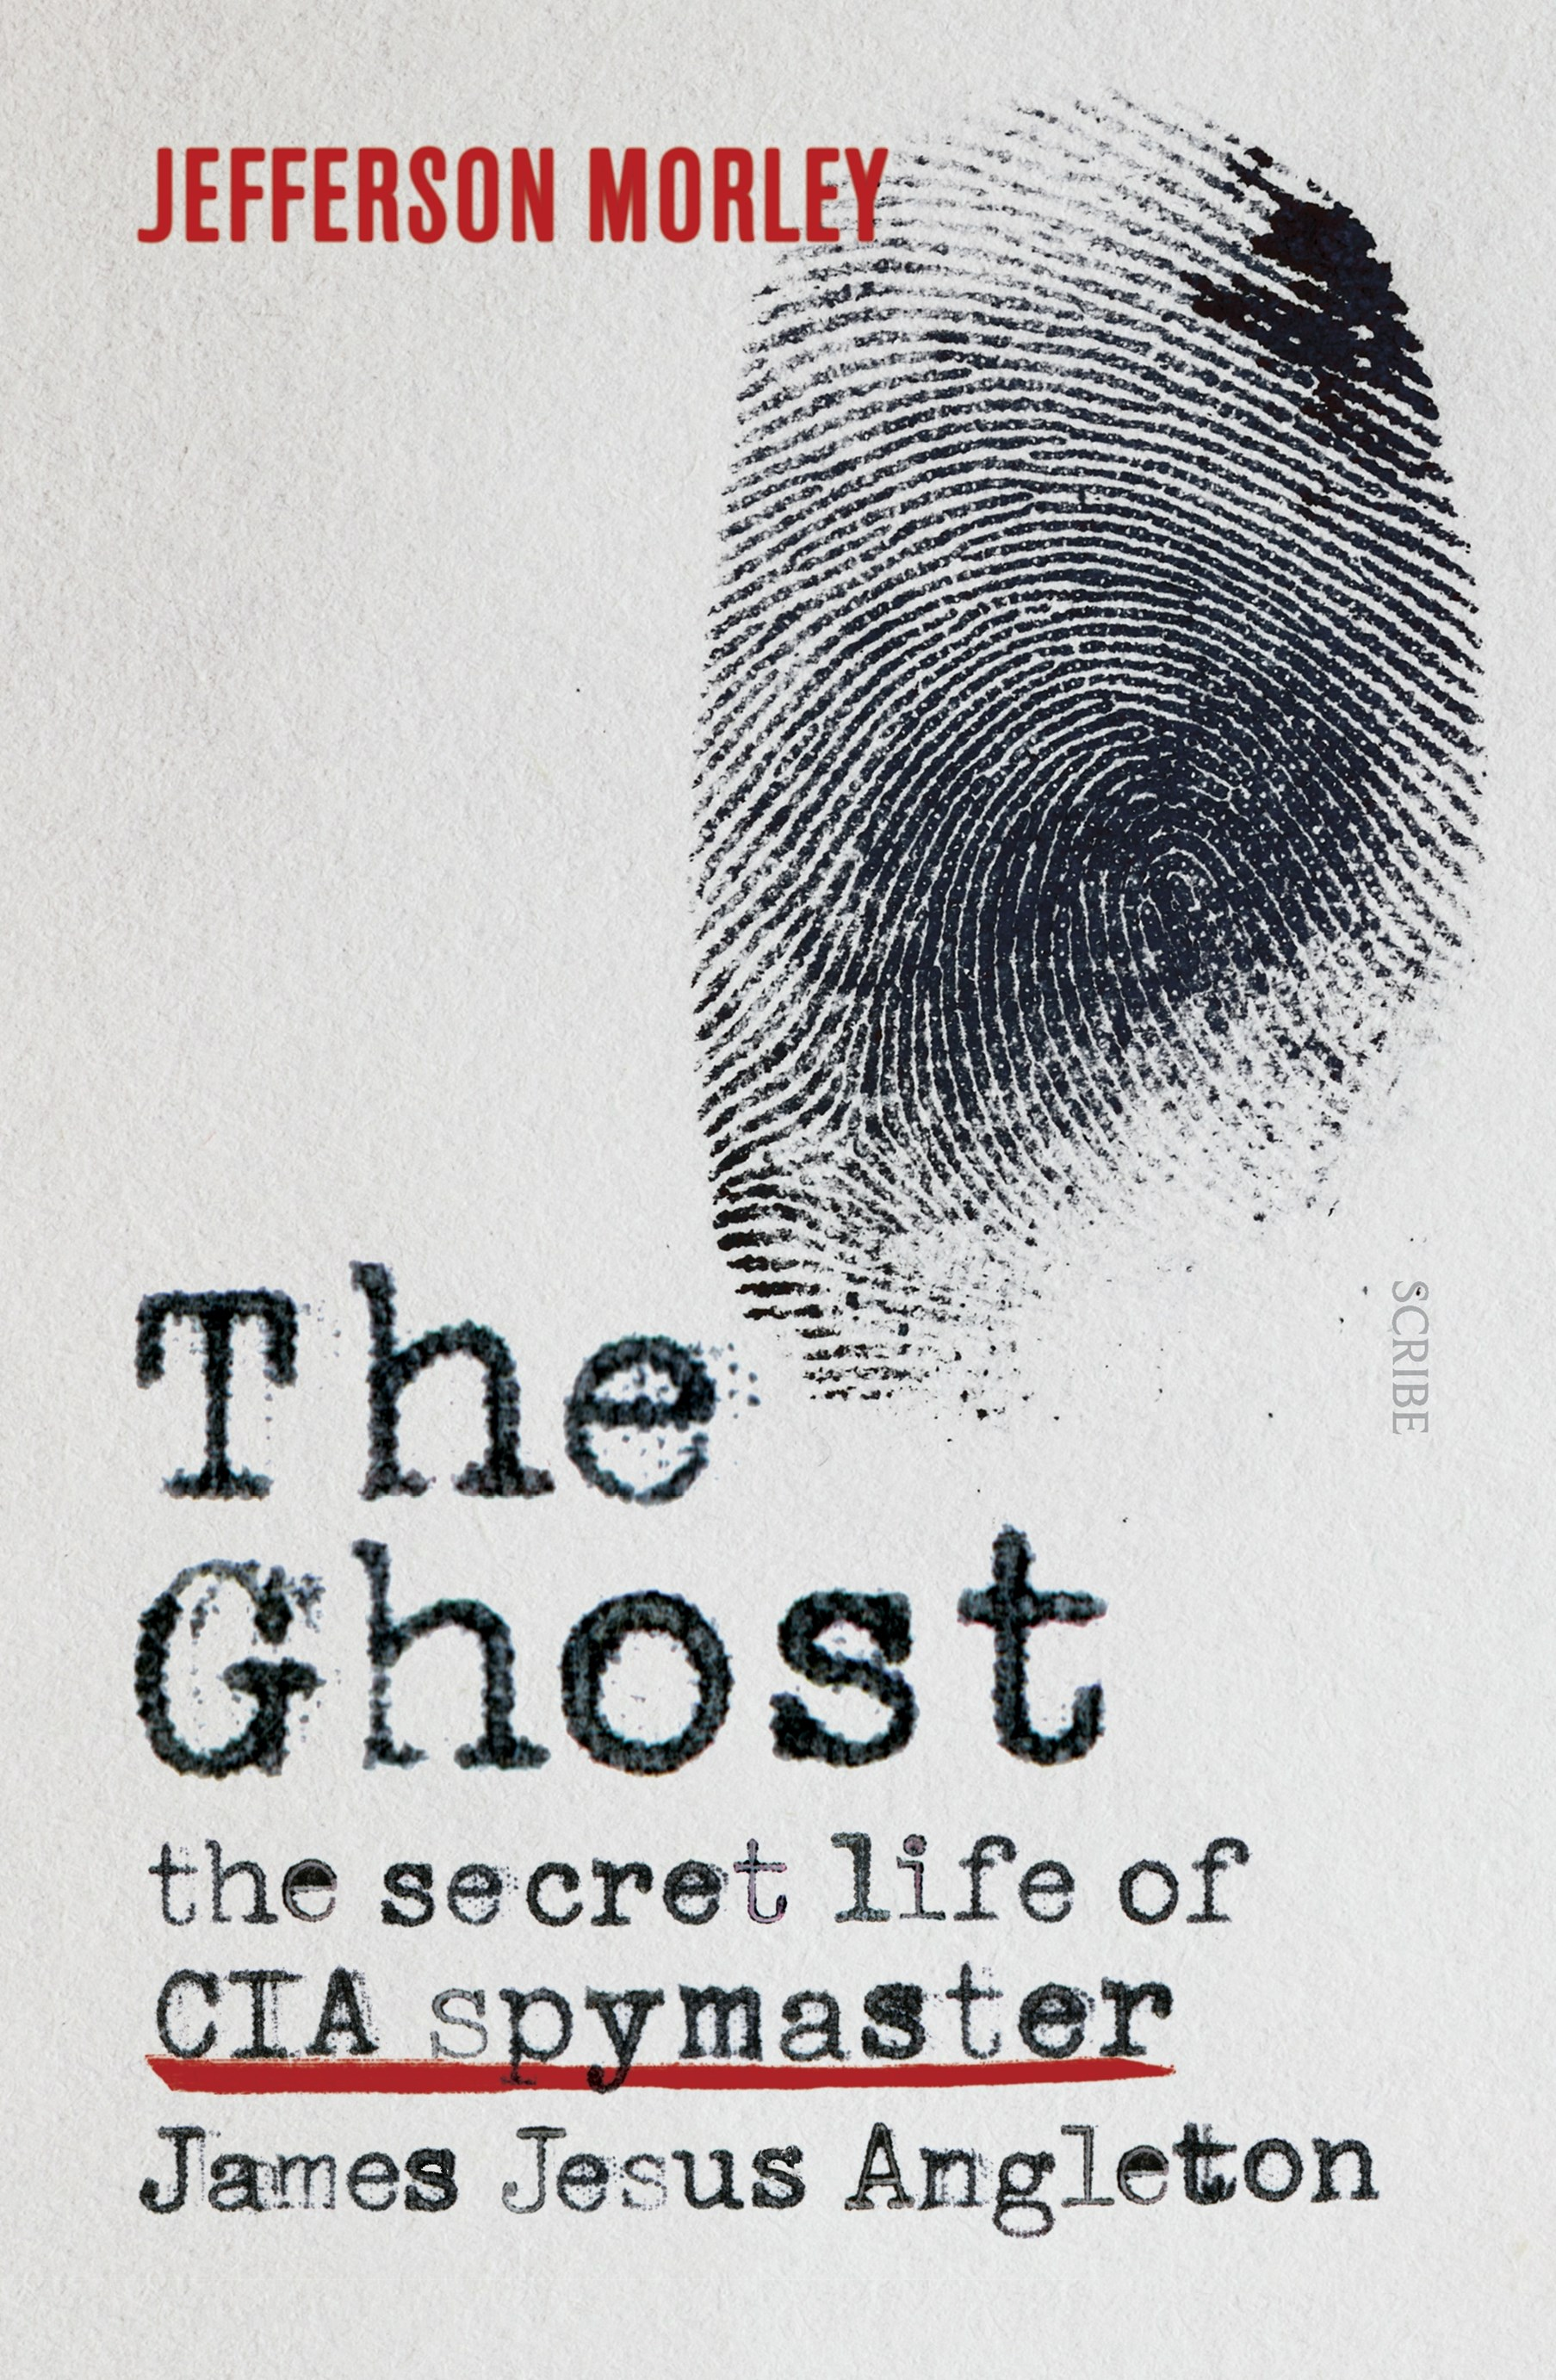 The Ghost: The Secret Life of CIA Spymaster James Jesus Angleton